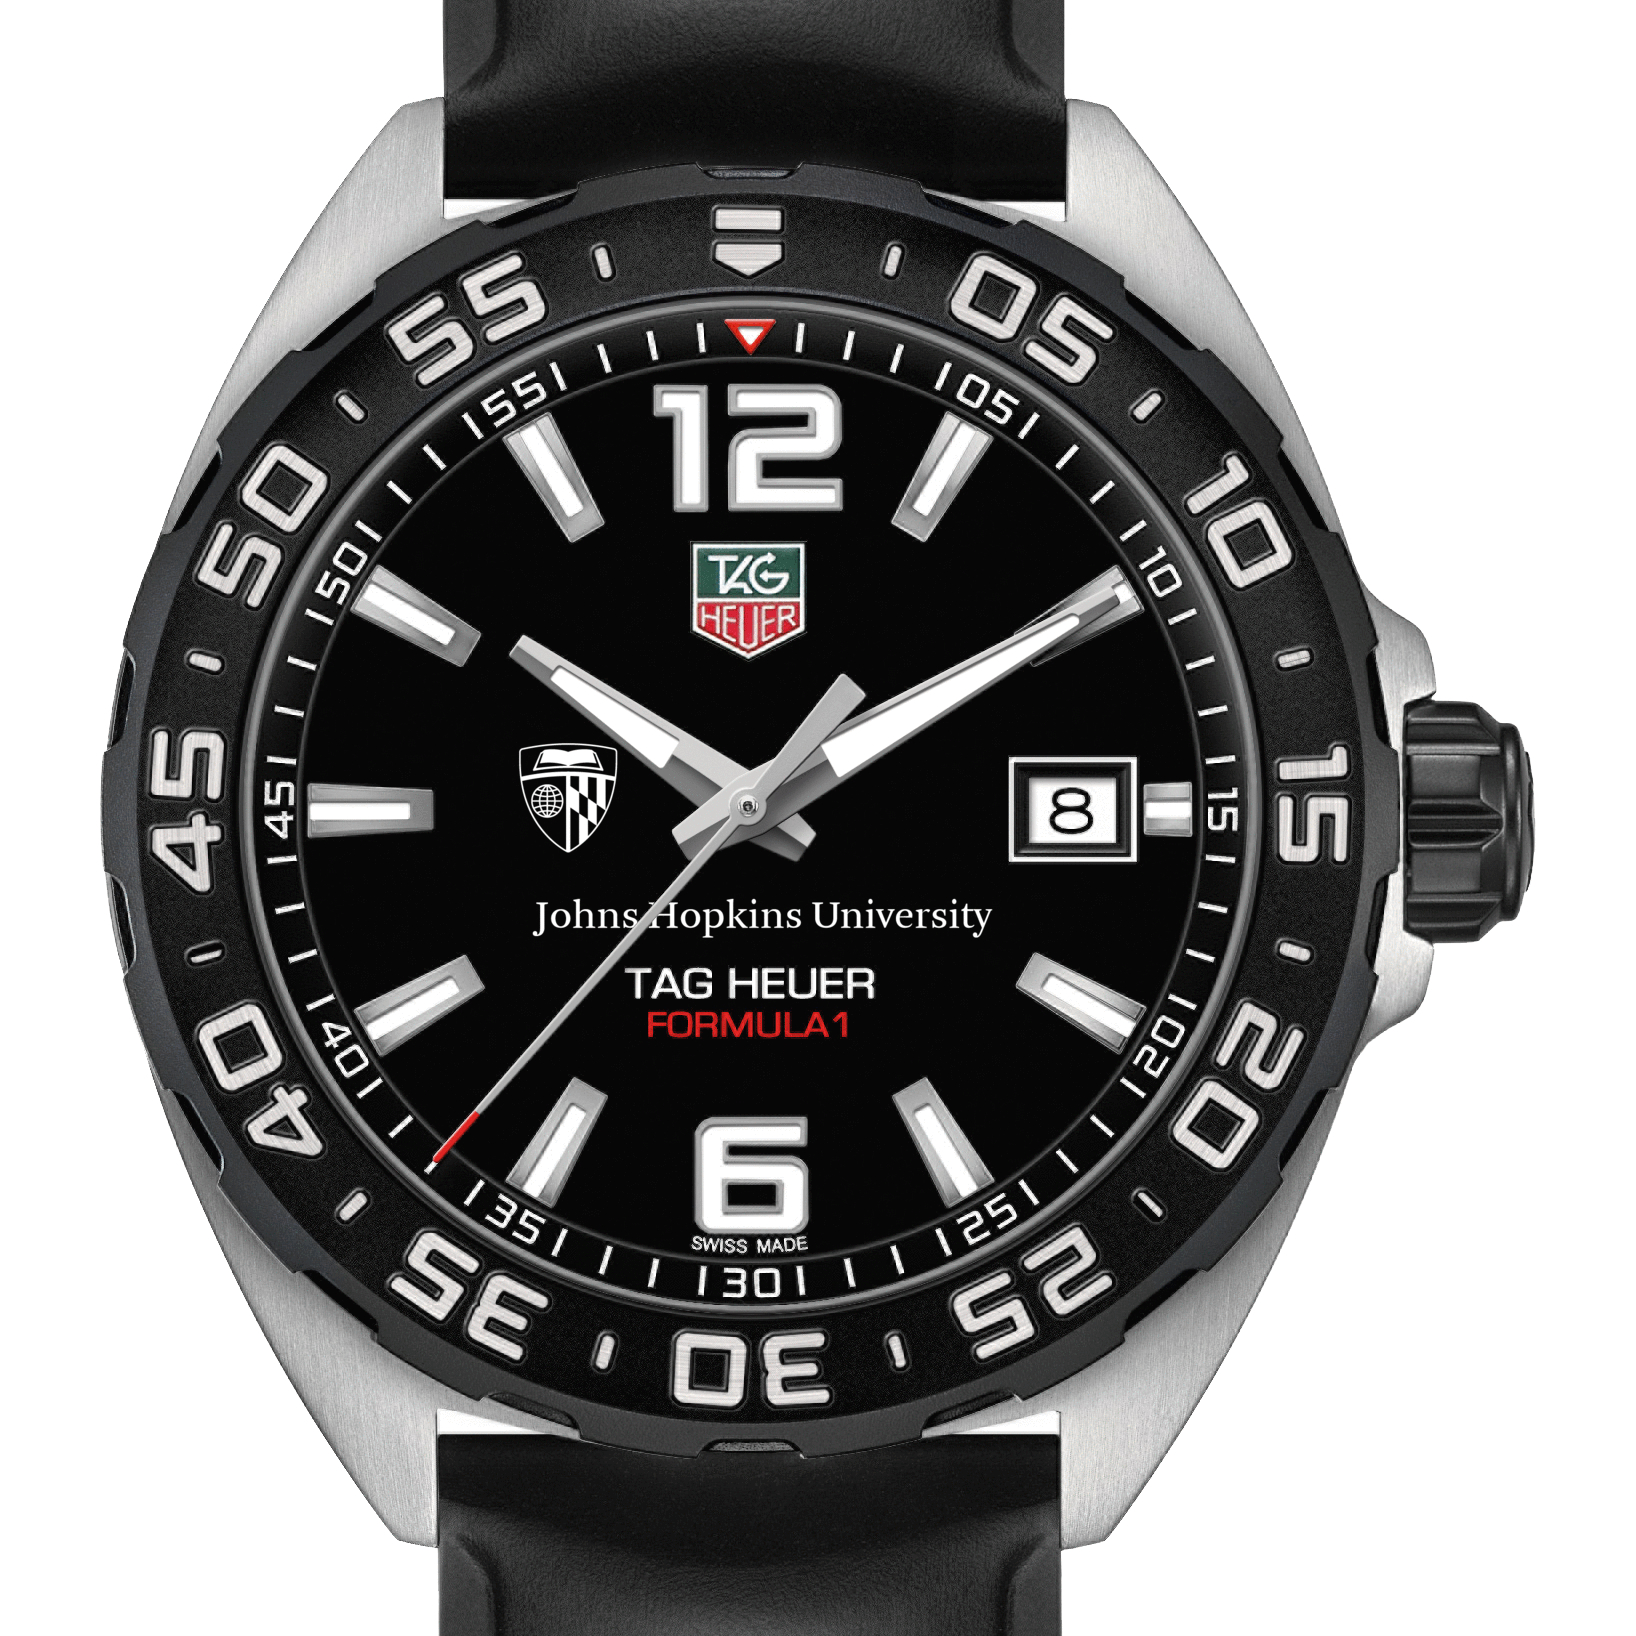 Johns Hopkins Men's TAG Heuer Formula 1 with Black Dial